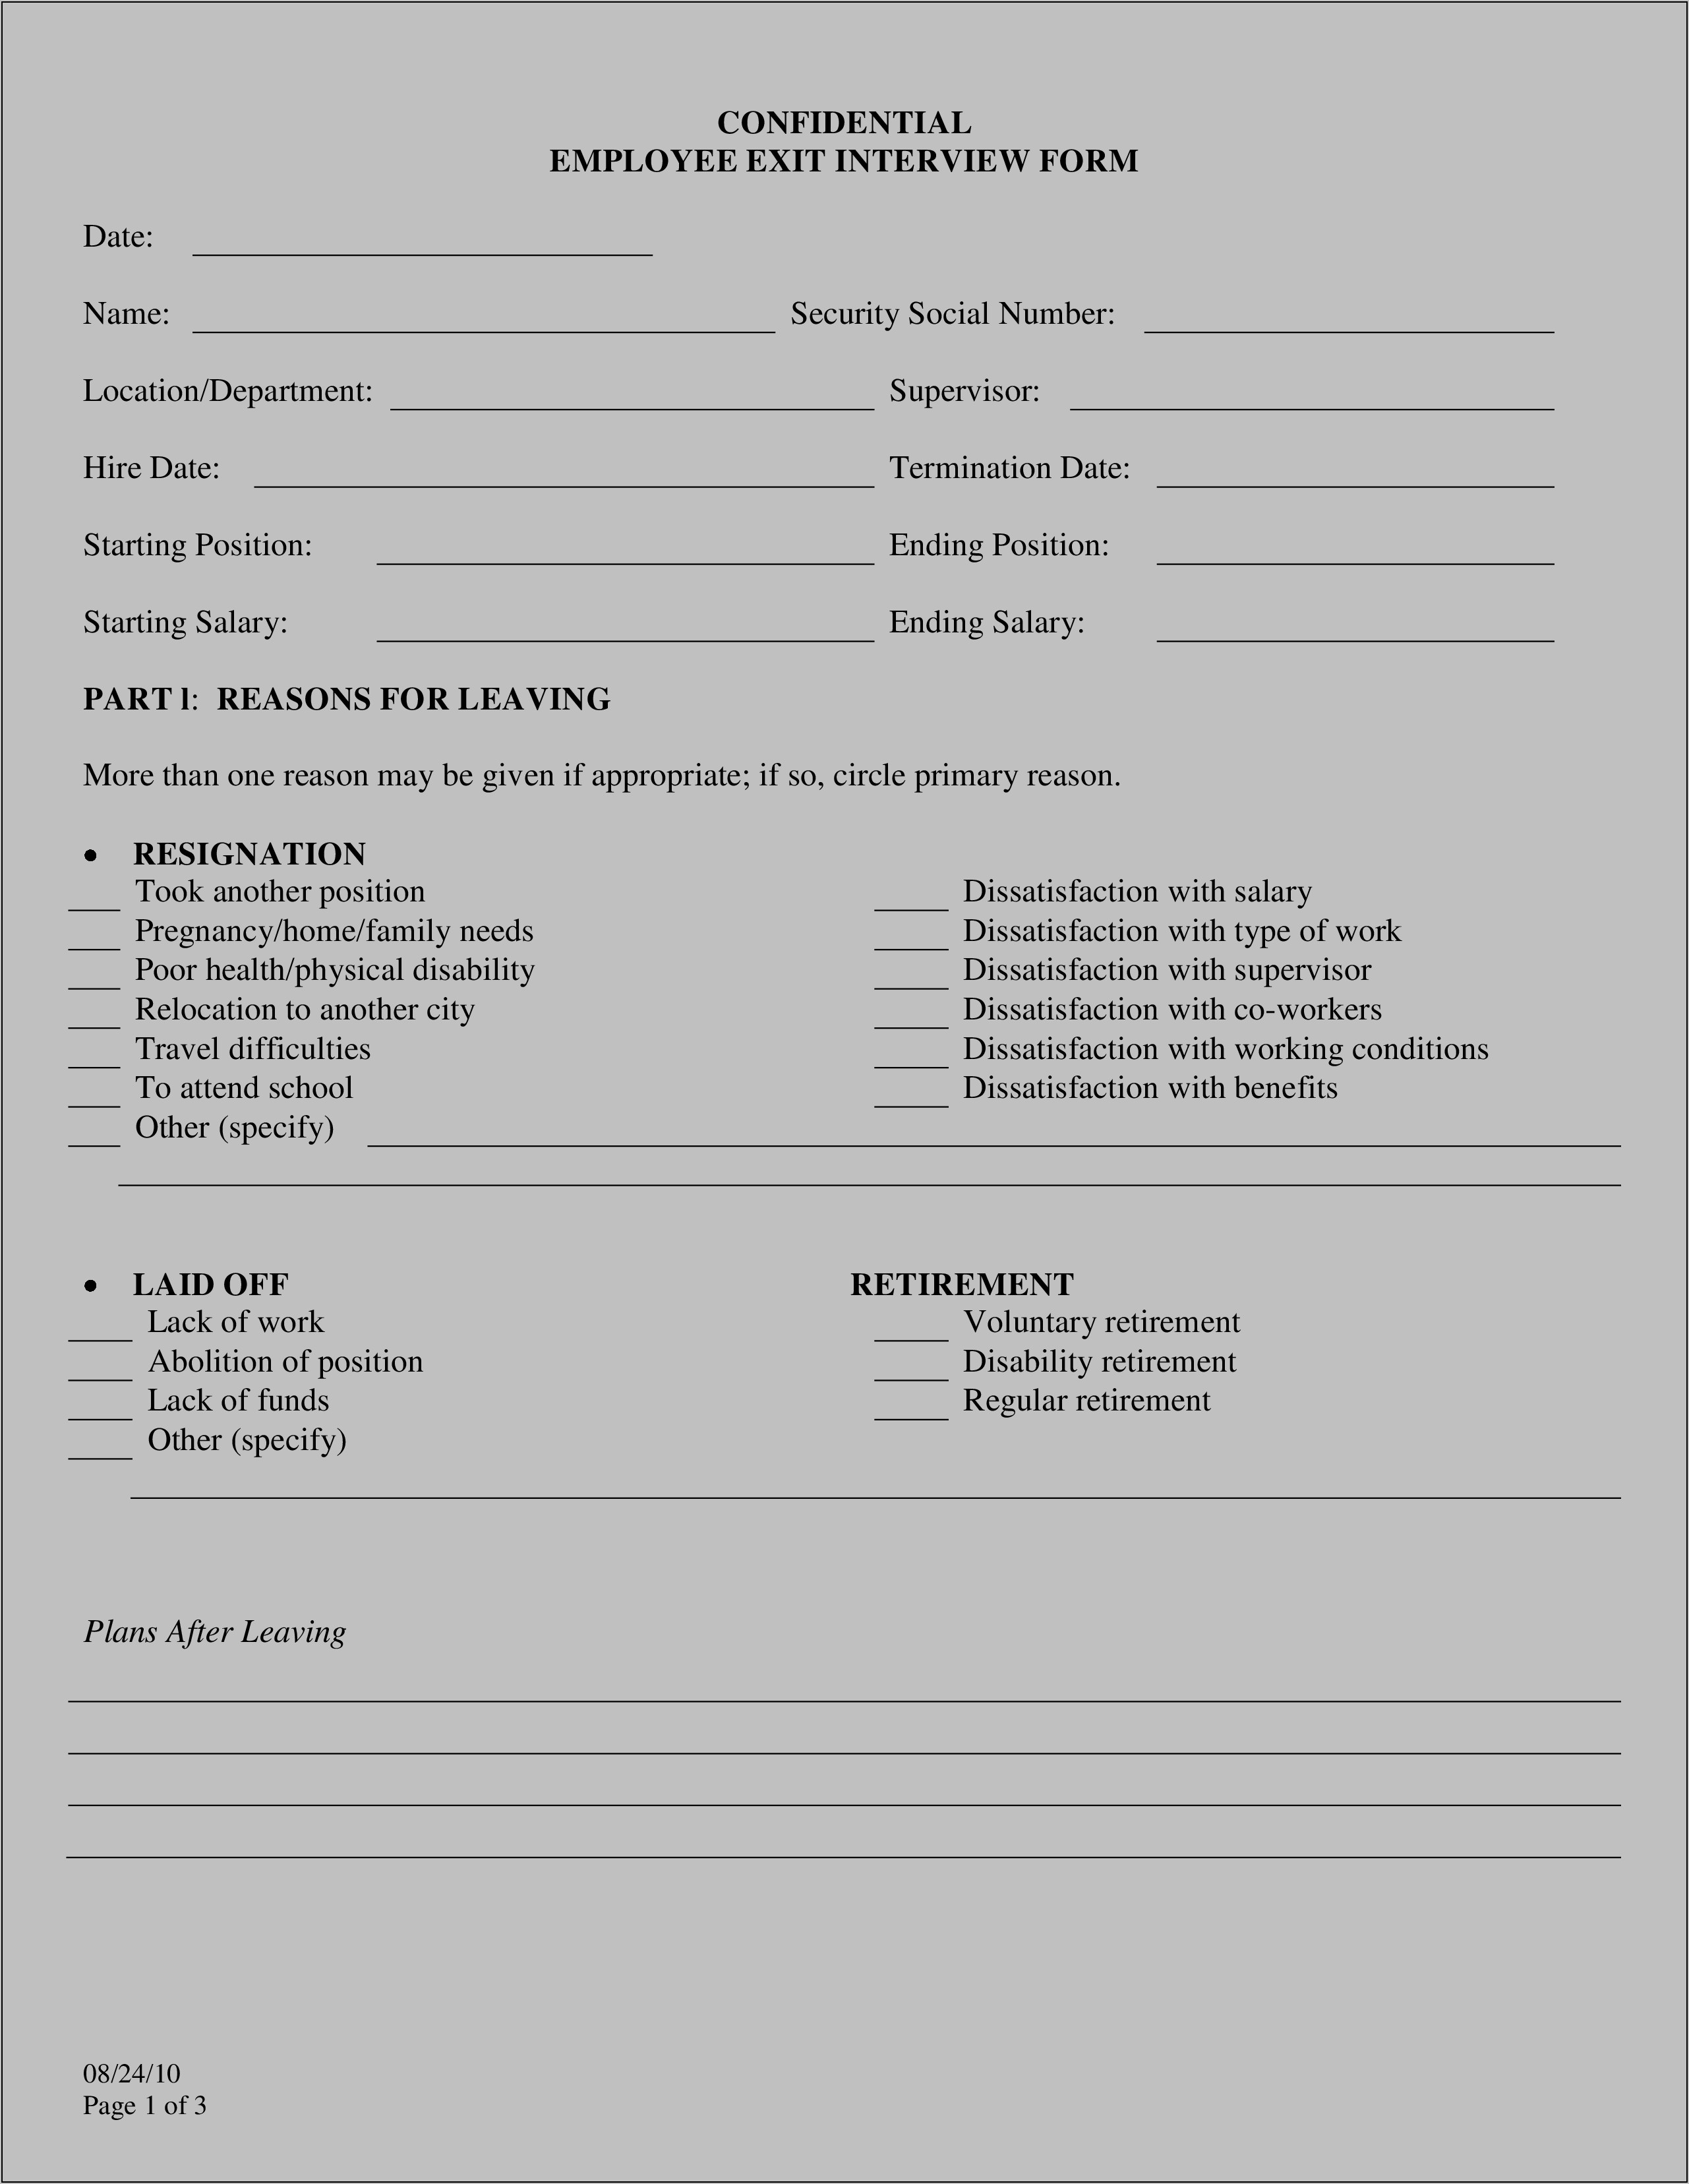 Employee Resignation Exit Interview Form